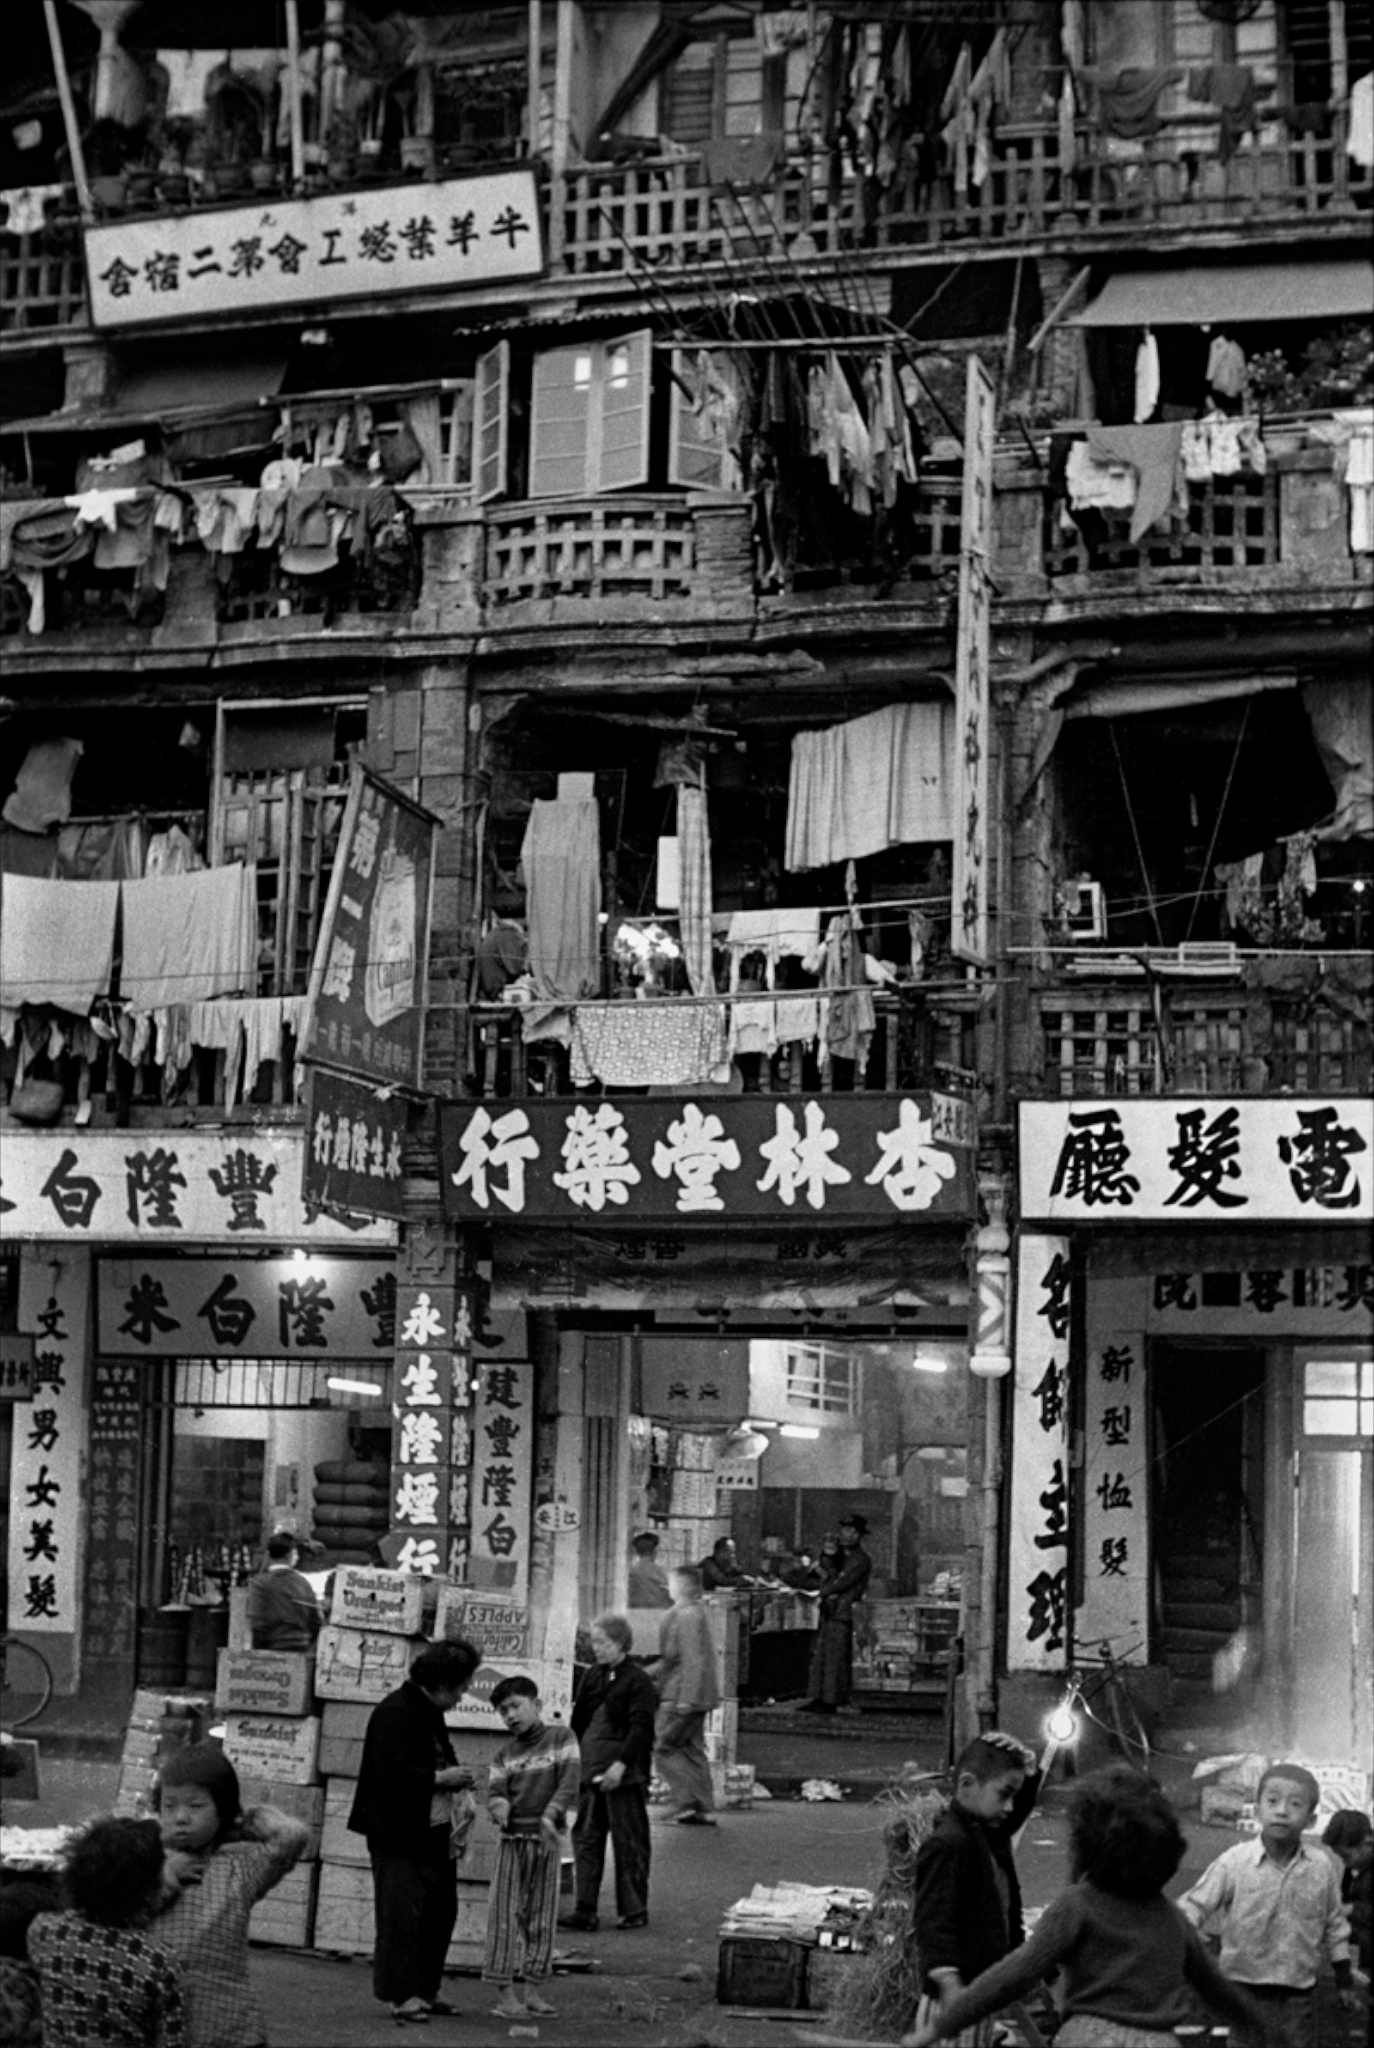 Pin By Mpv On Old Hong Kong In 2020 History Of Hong Kong Hong Kong Travel Hong Kong